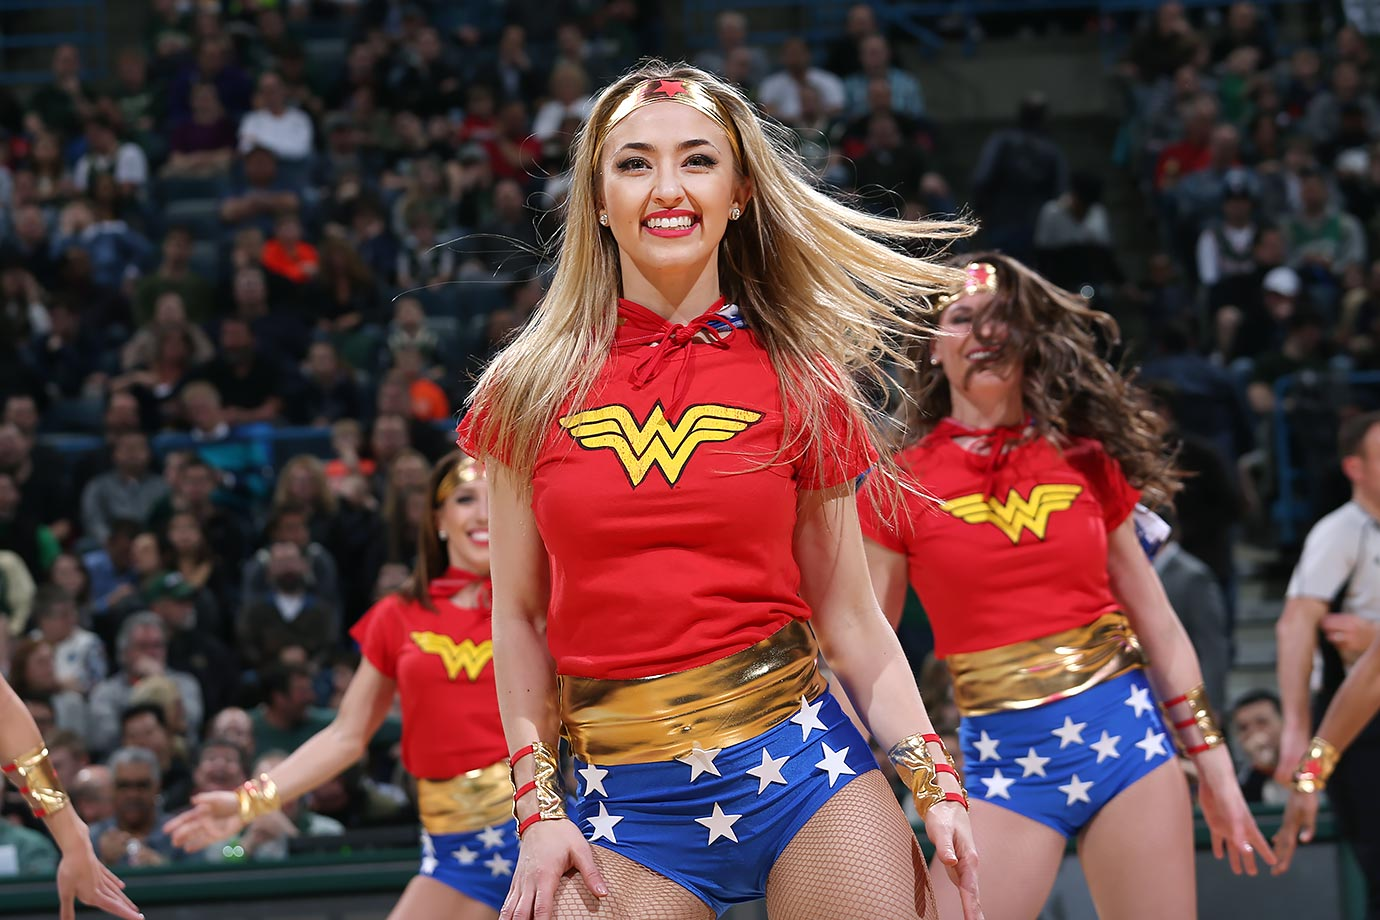 Milwaukee Bucks Dancers perform in Wonder Woman costumes during their game against the New Orleans Pelicans in Milwaukee.